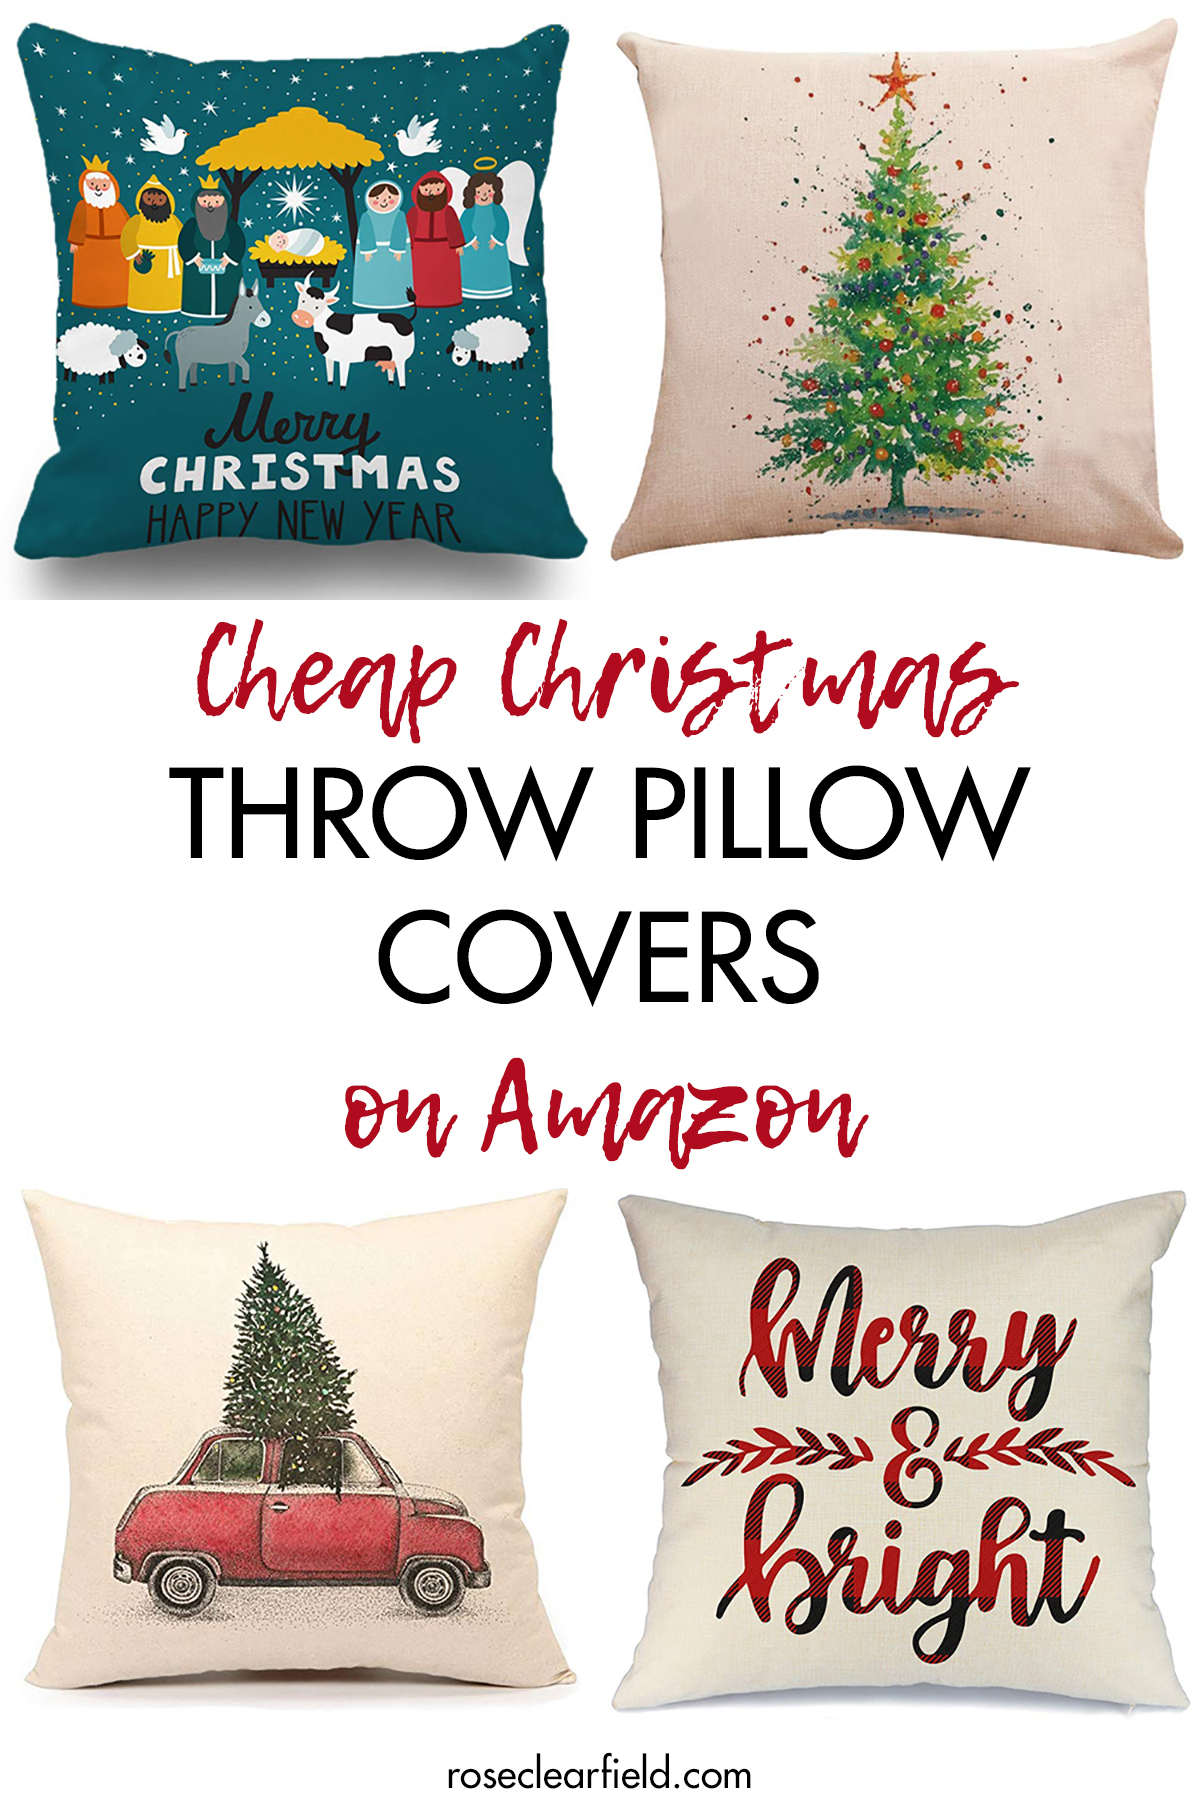 Cheap Christmas Throw Pillow Covers on Amazon • Rose Clearfield